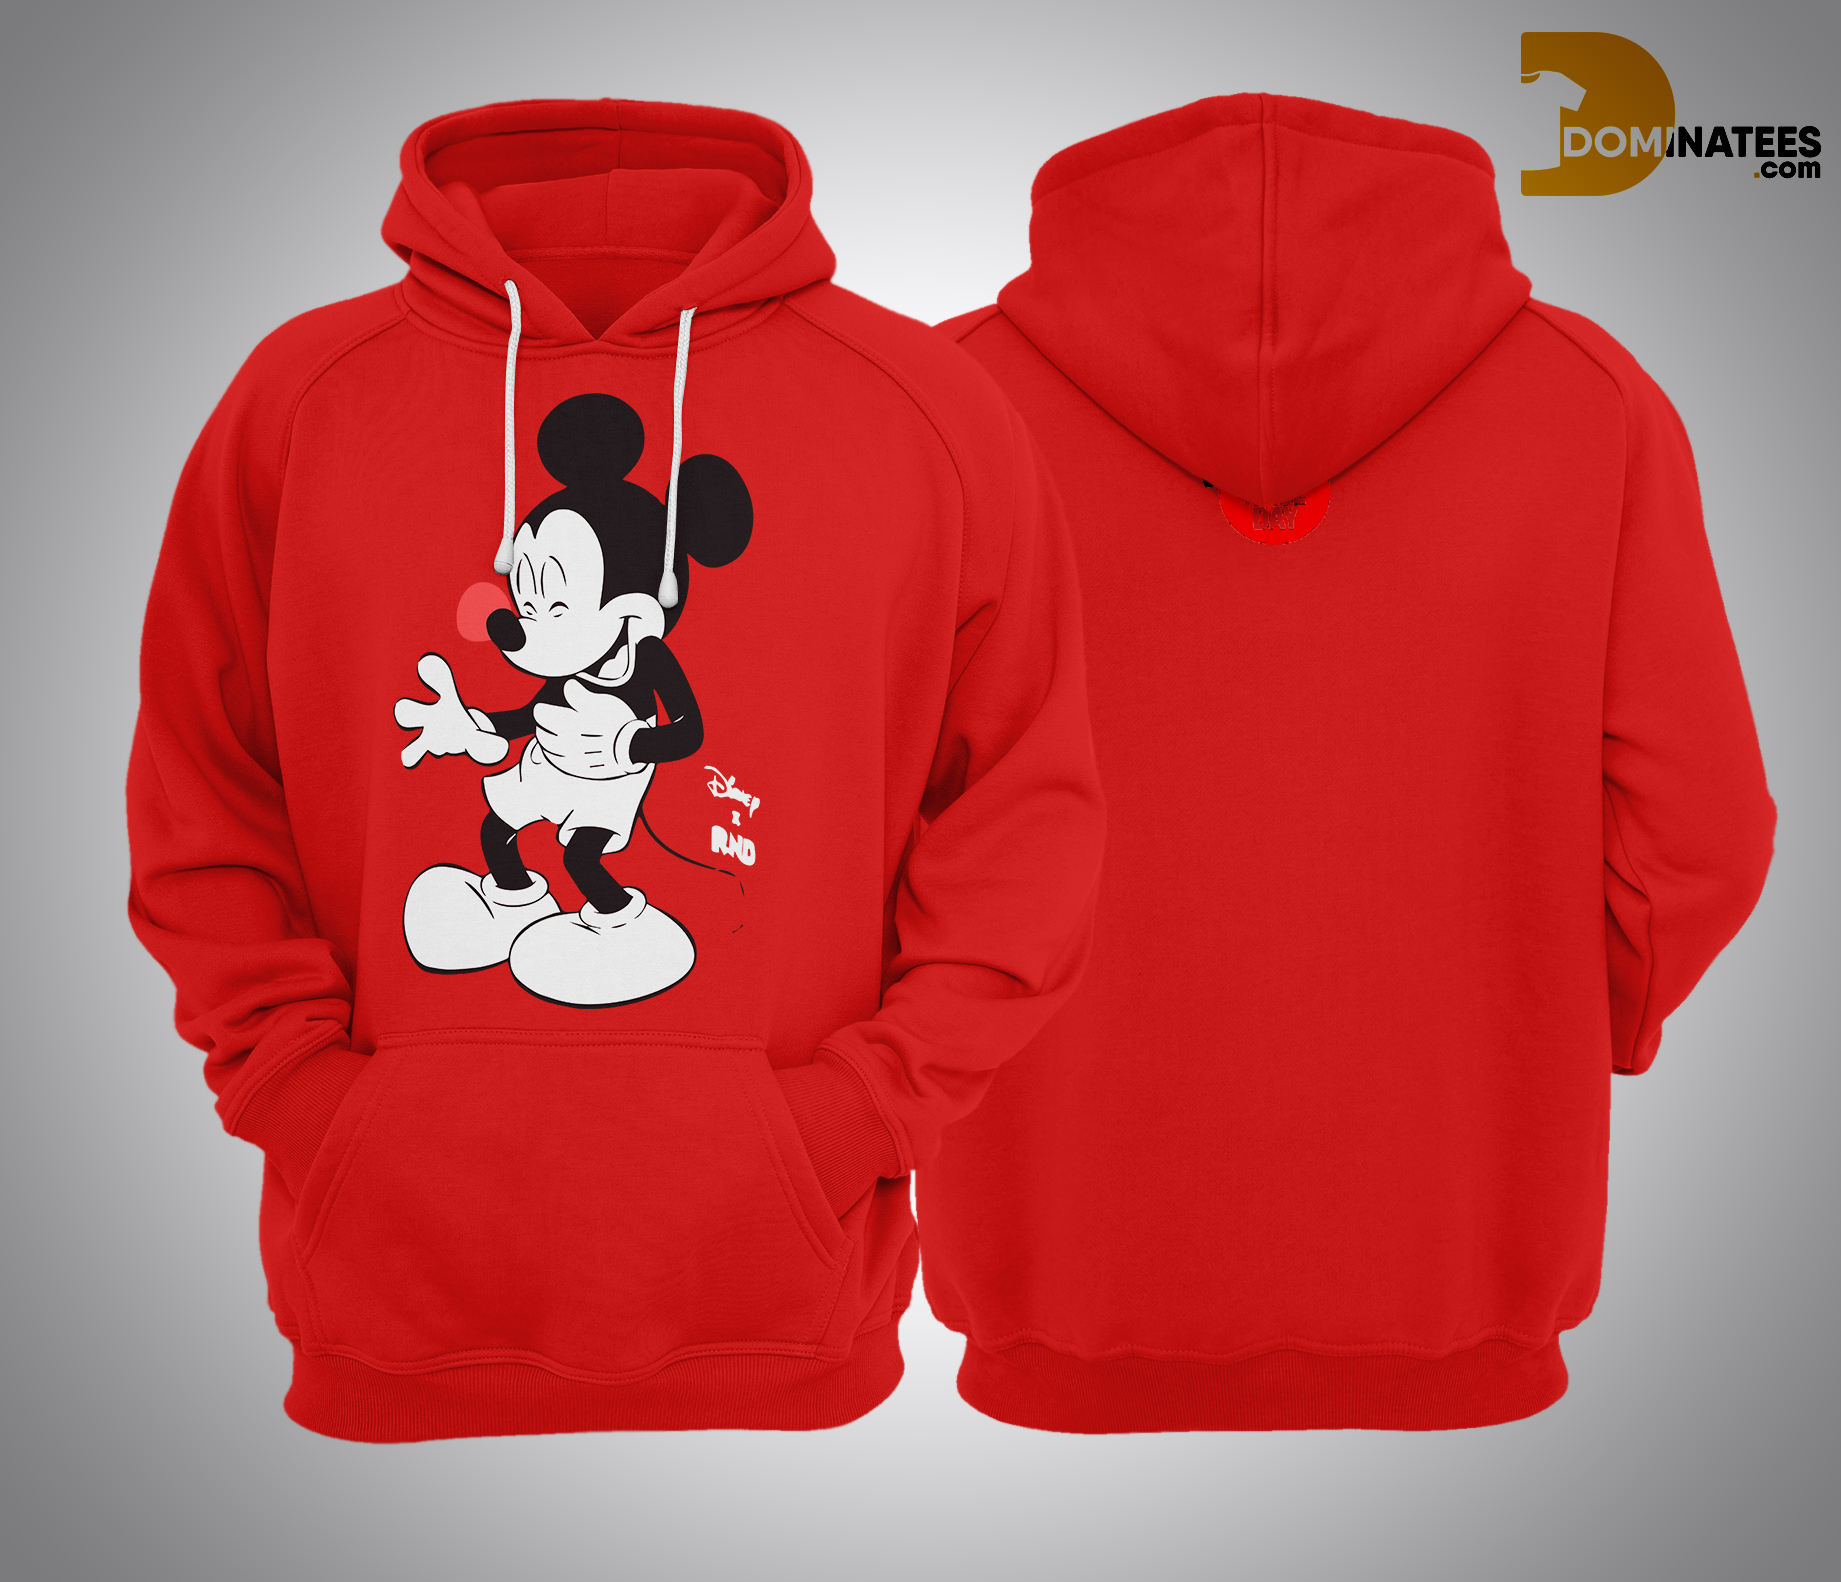 RED NOSE DAY Mickey Mouse Hoodie 2019